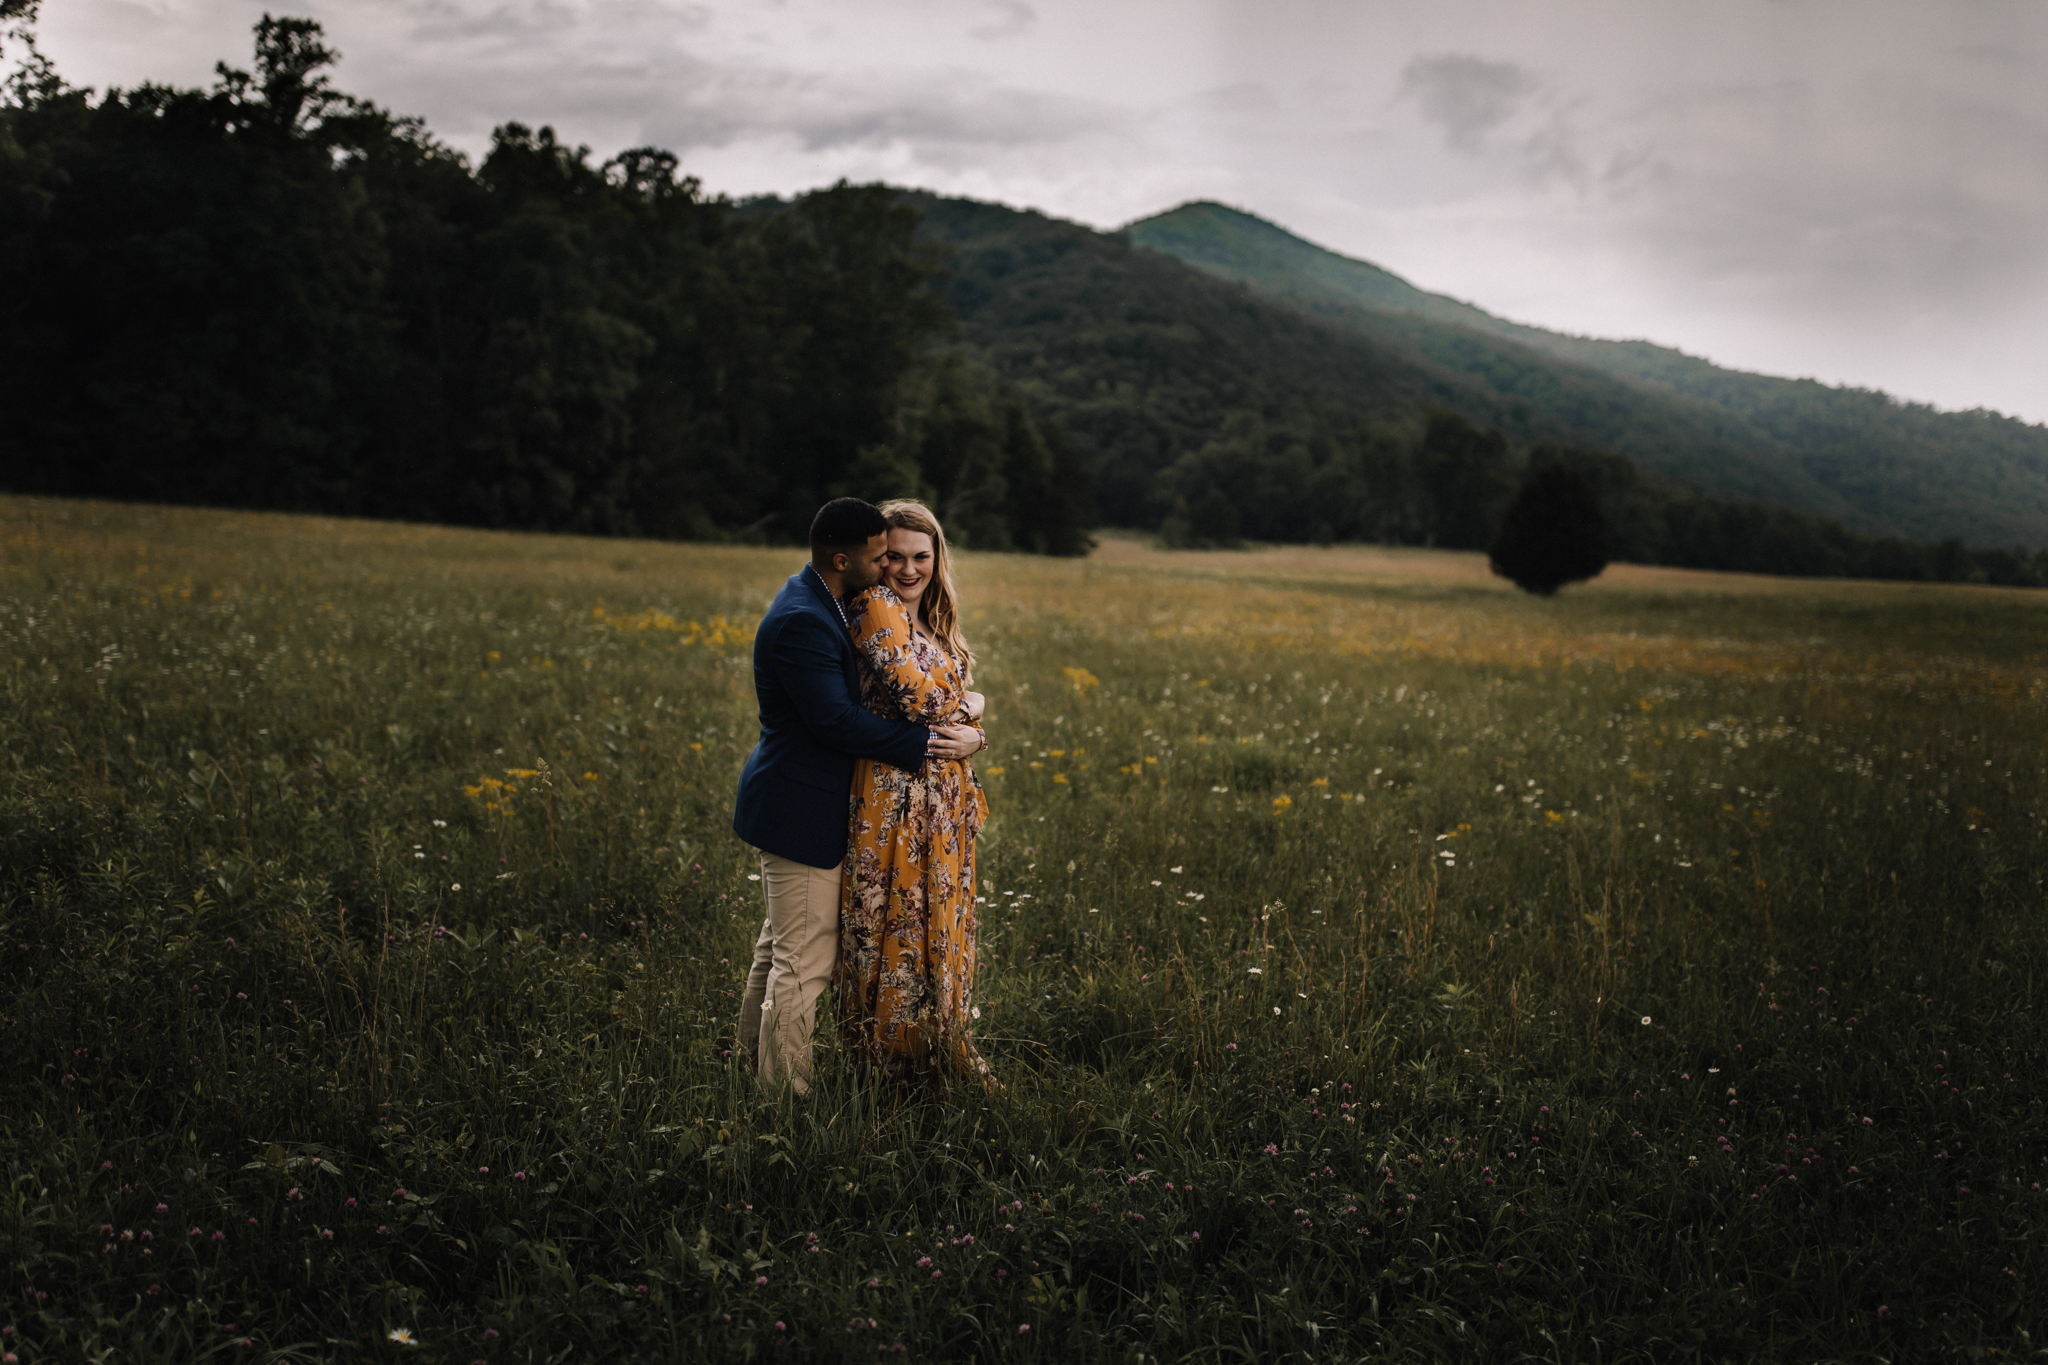 billie-shaye style photography - www.billieshayestyle.com - smokey mountain cades cove summer rain engagement session - gatlinburg tennessee-0377.jpg